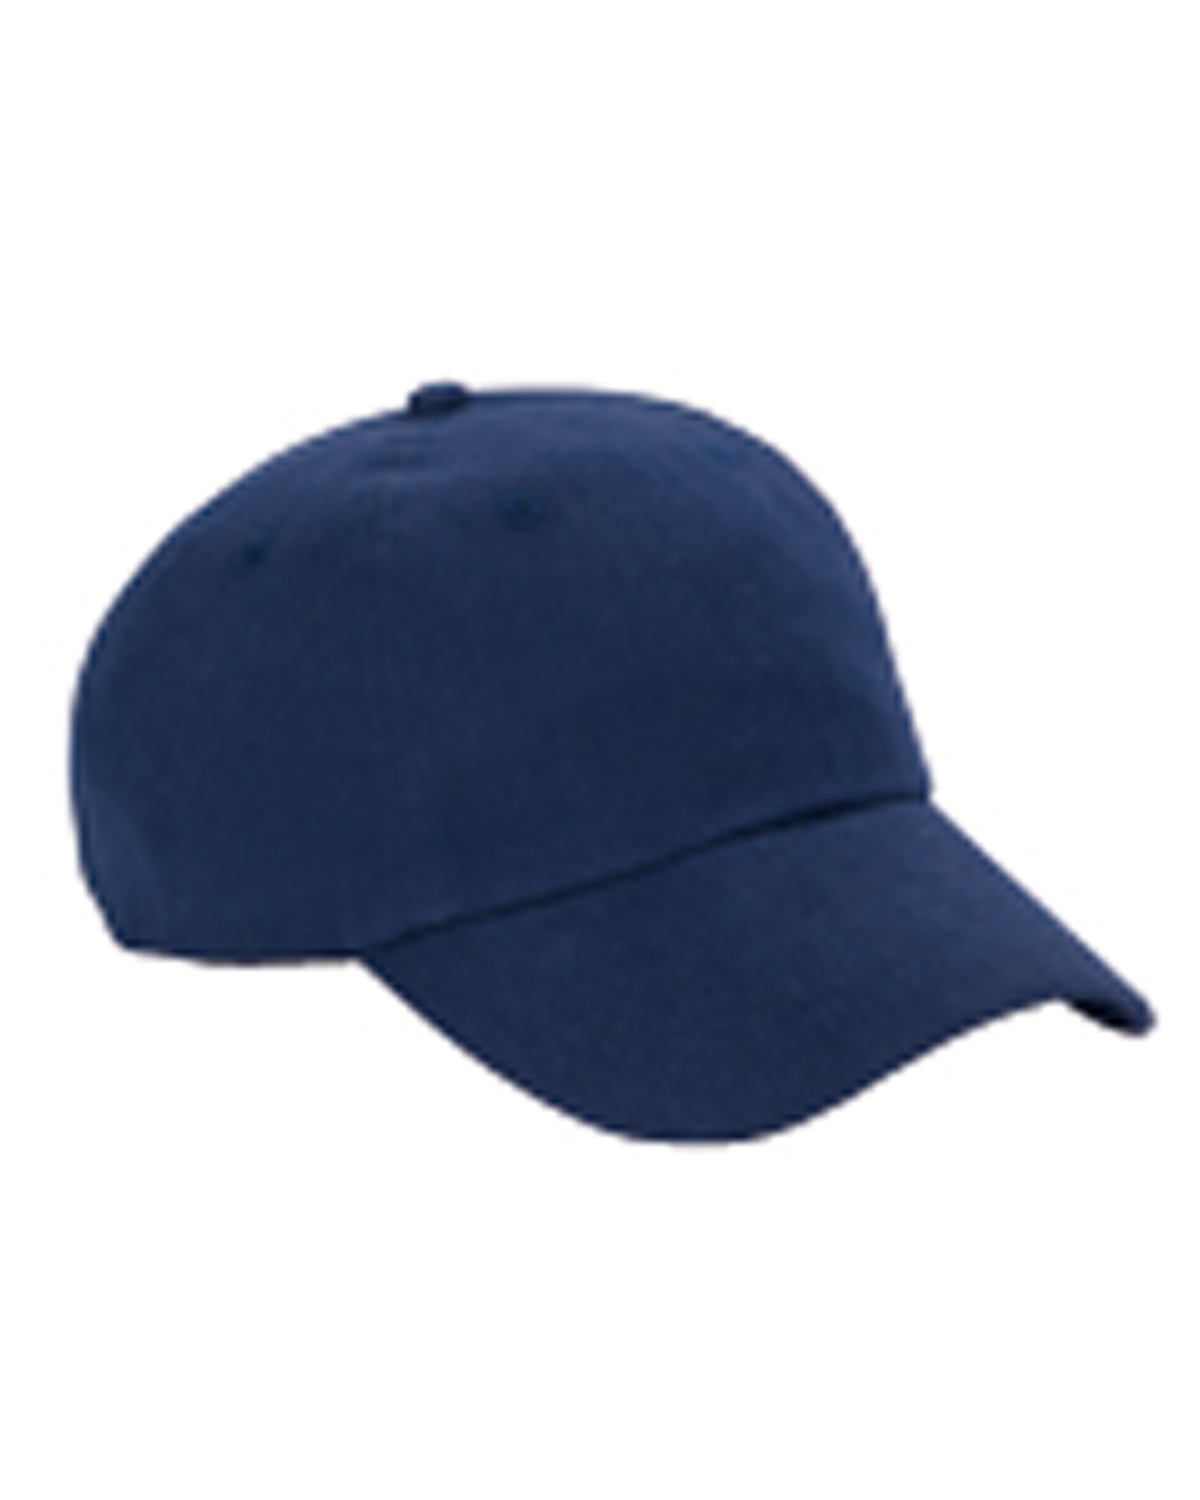 b33a7a7a471d82 Big Accessories BX005 6-Panel Washed Twill Low-Profile Cap - Navy - One Size  - Walmart.com